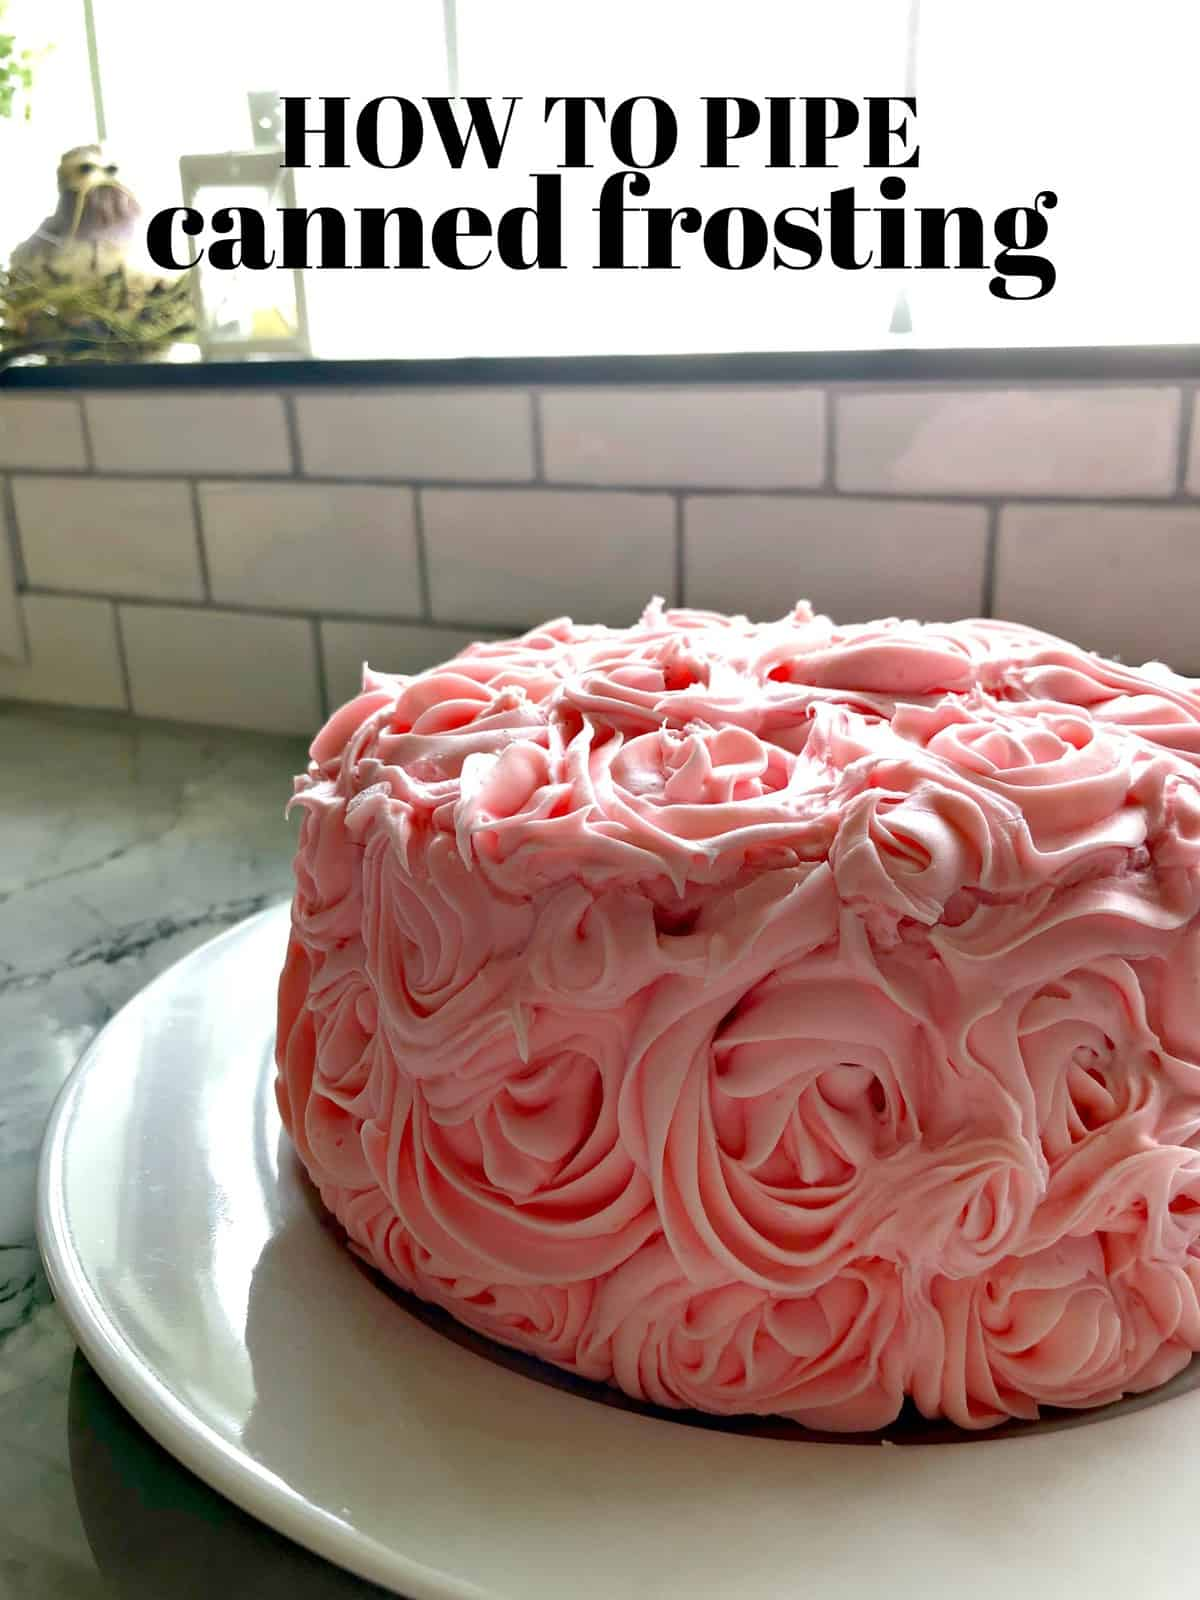 How to Pipe Canned Frosting